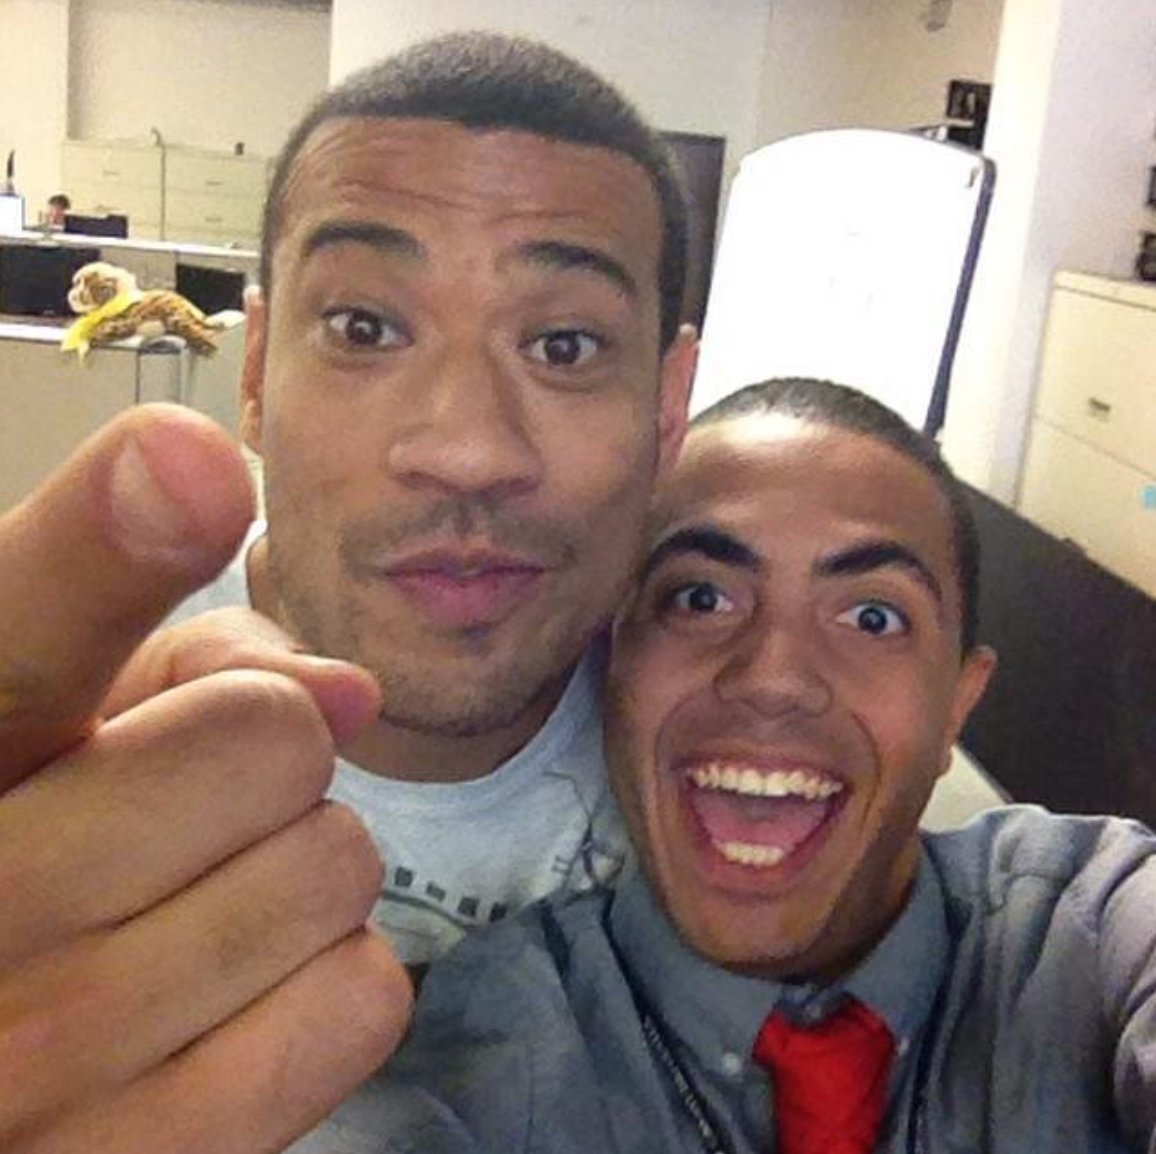 A #FBF to @TheInsider days in 2014 & it's also a #FridayFeeling because it's 1⃣ week until @MichaelYo's #Blasian comedy special on April 13, 2018 🗓️@AlexTheatre📍& WE can get 🆓 audience 🎟️ to join the occasion at http://MichaelYo.com ! 🤩 #YoBlasian